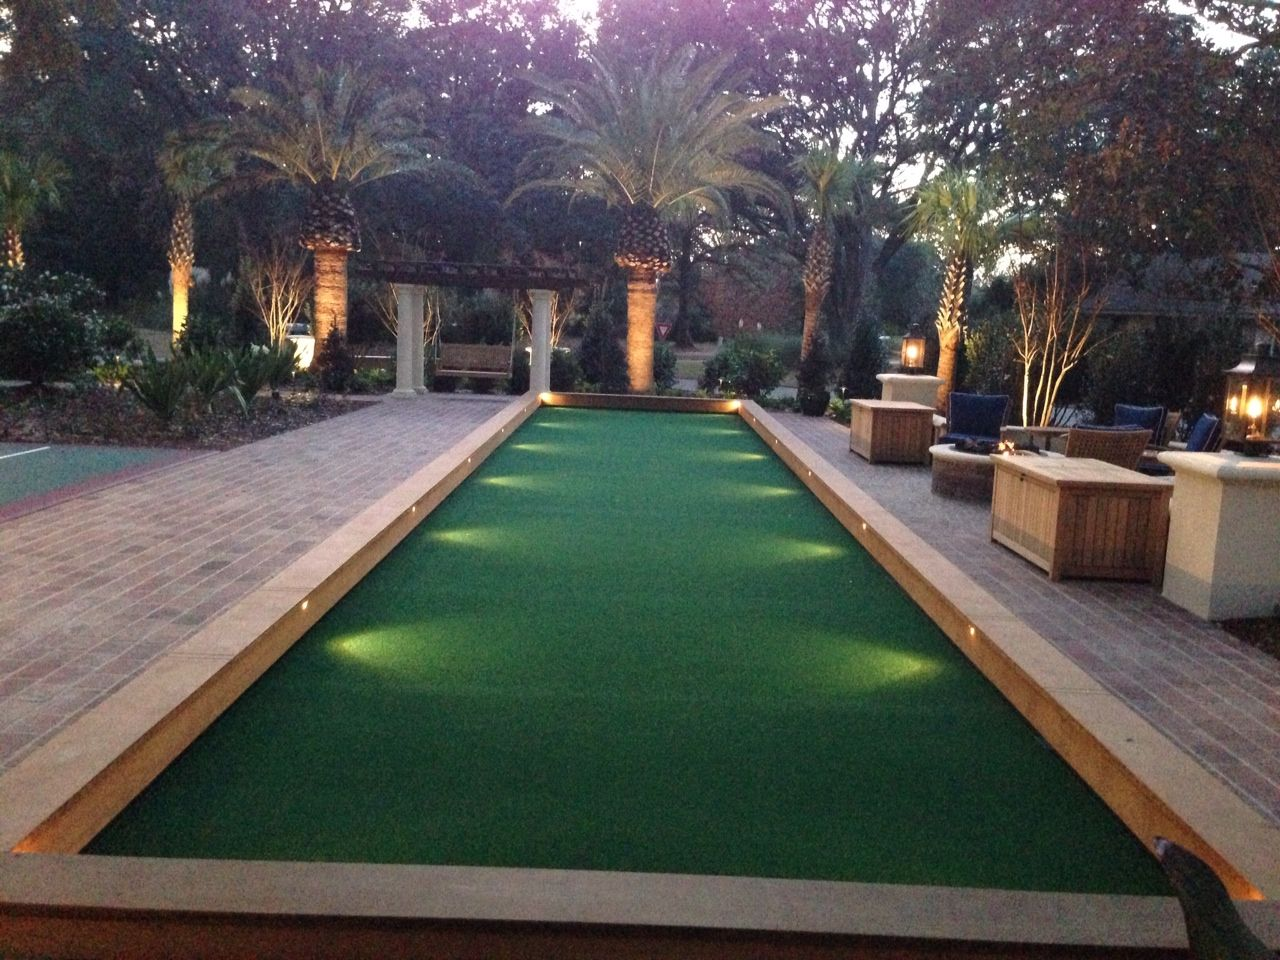 Bocce Ball Court Dimensions Bocce Court Bocce Ball Bocce Ball Court